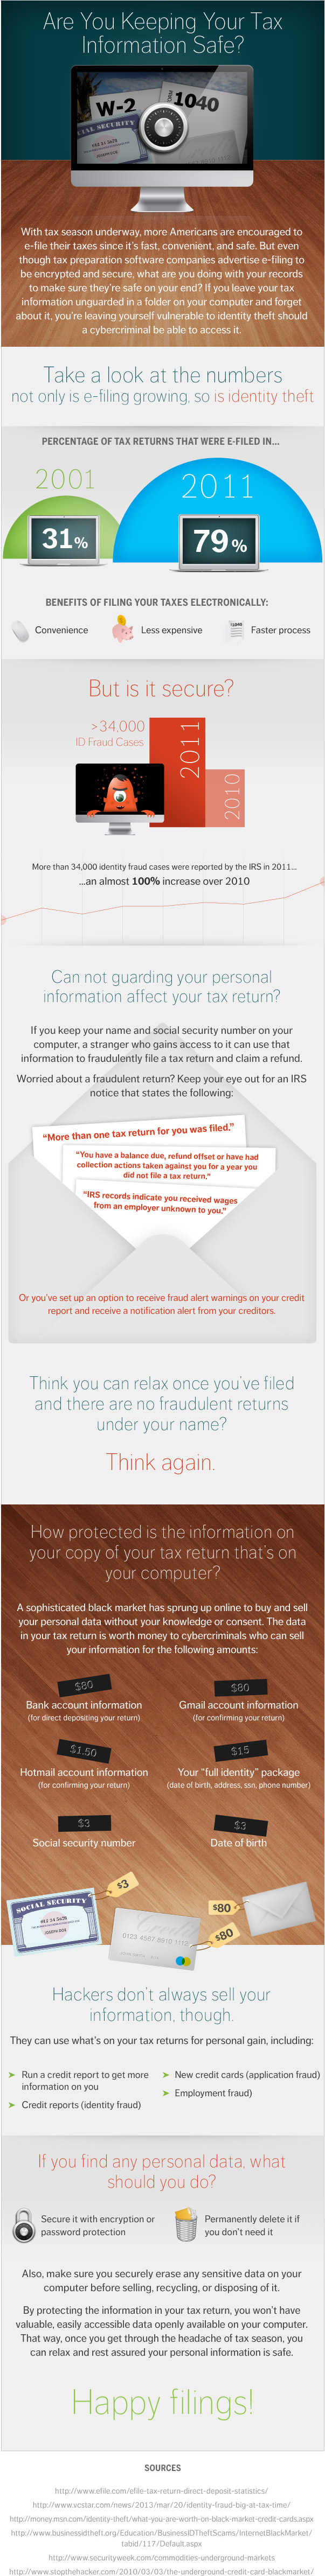 How to keep your tax information safe and secure infographic